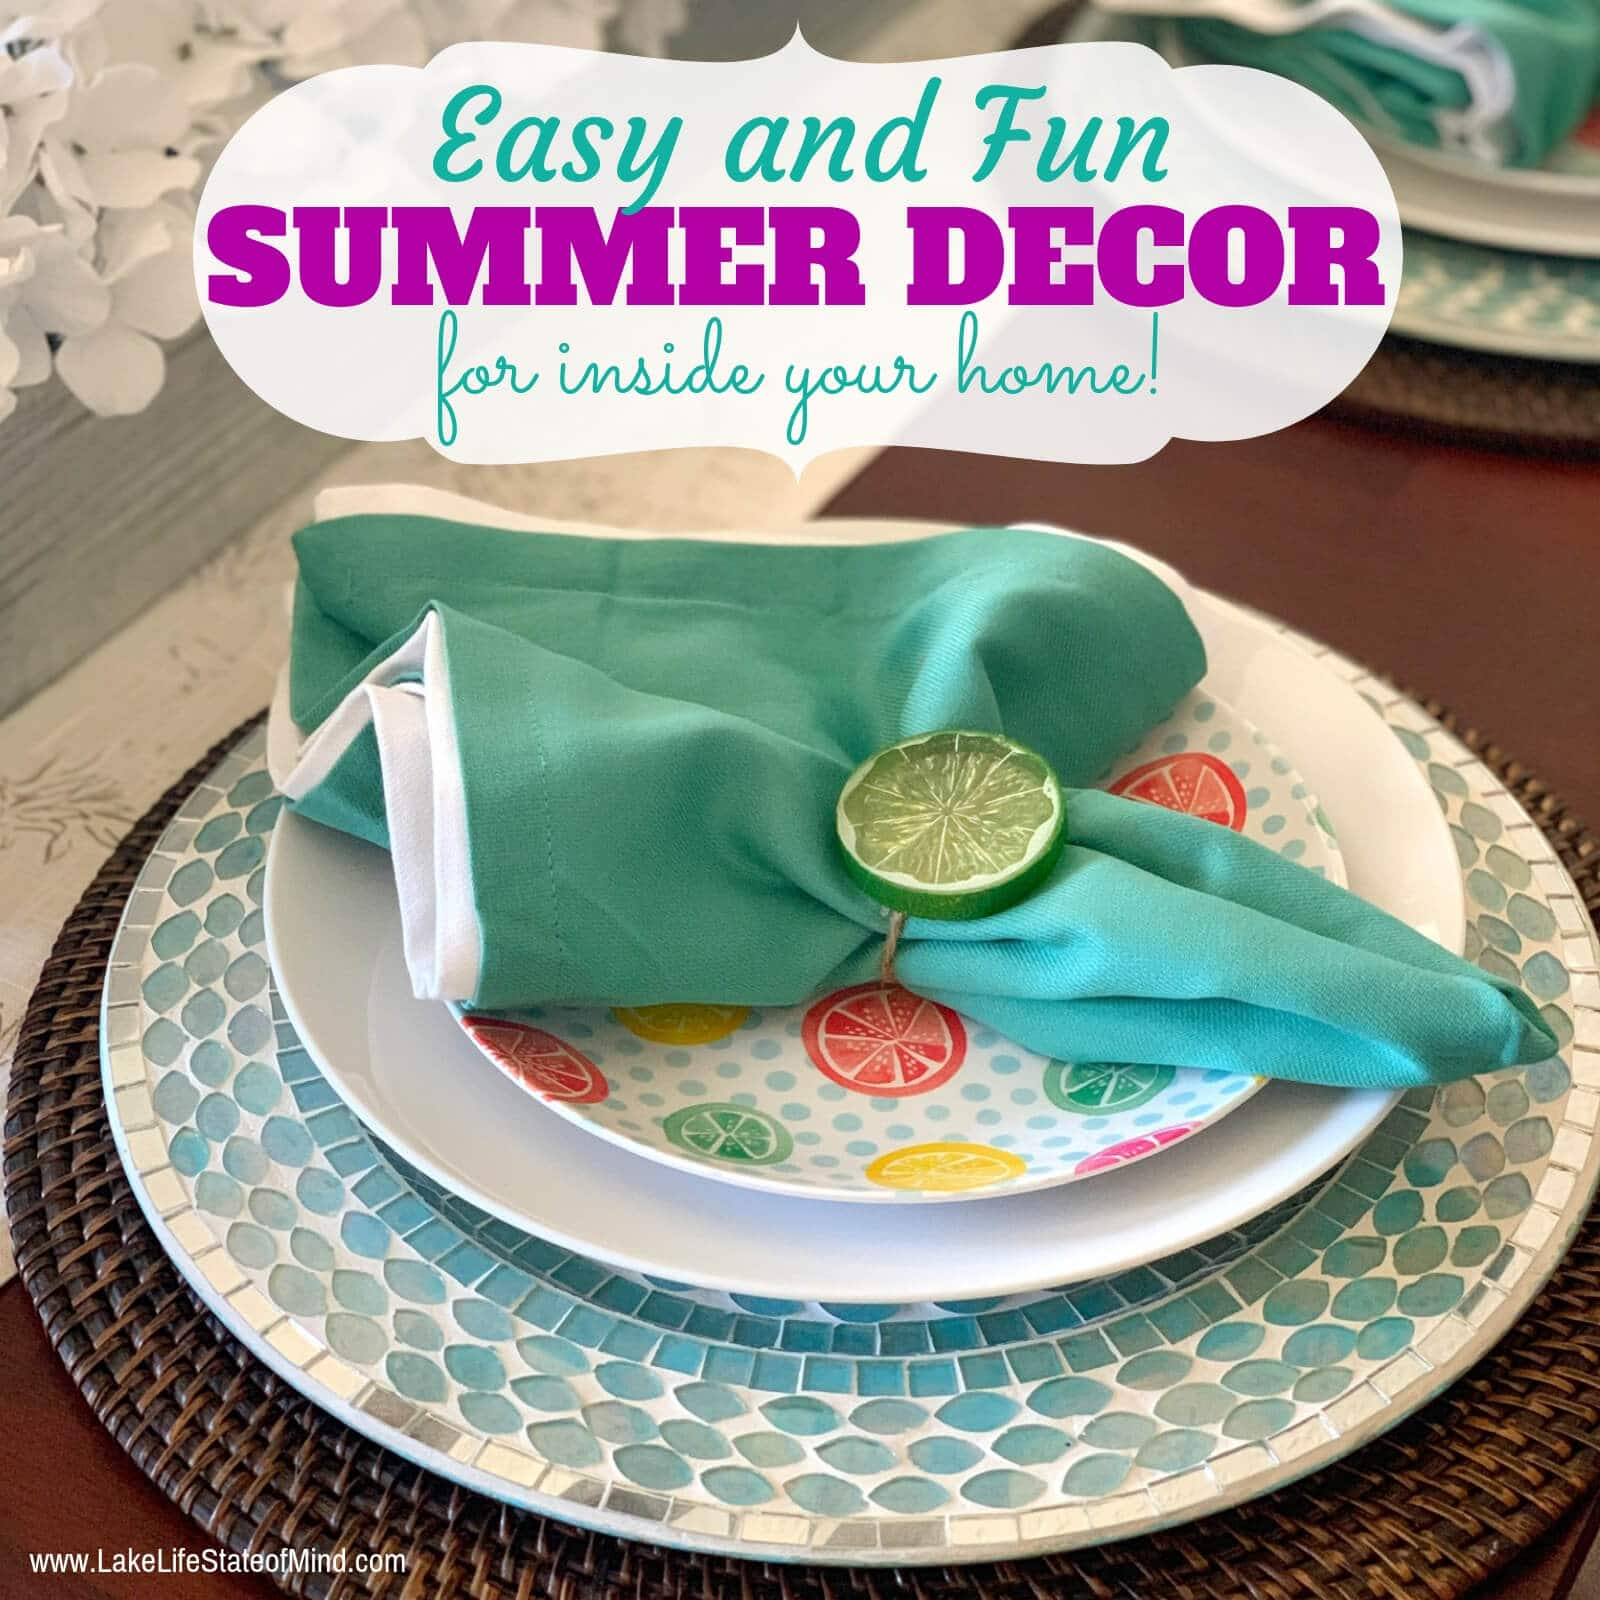 Fun Summer Decorating Ideas for the Home